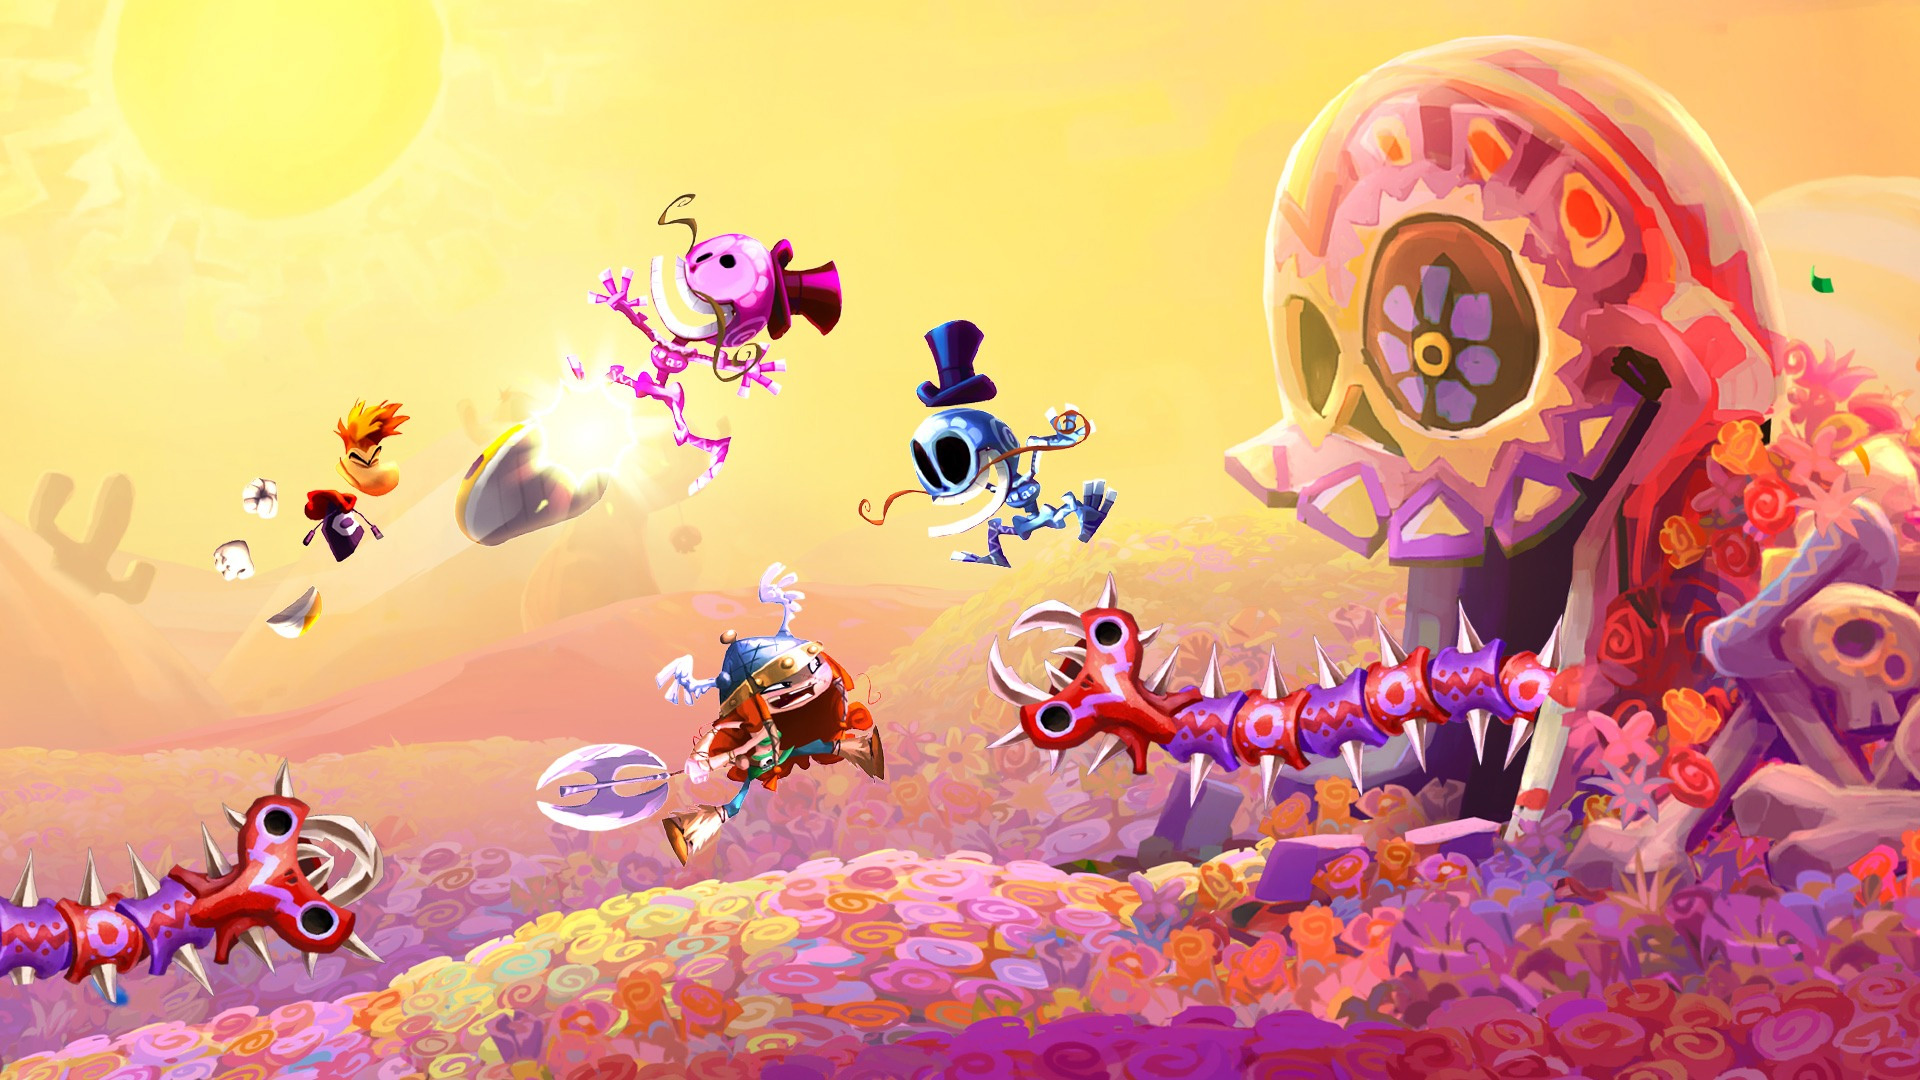 If you never got around to Rayman Legends, it's free on PC screenshot